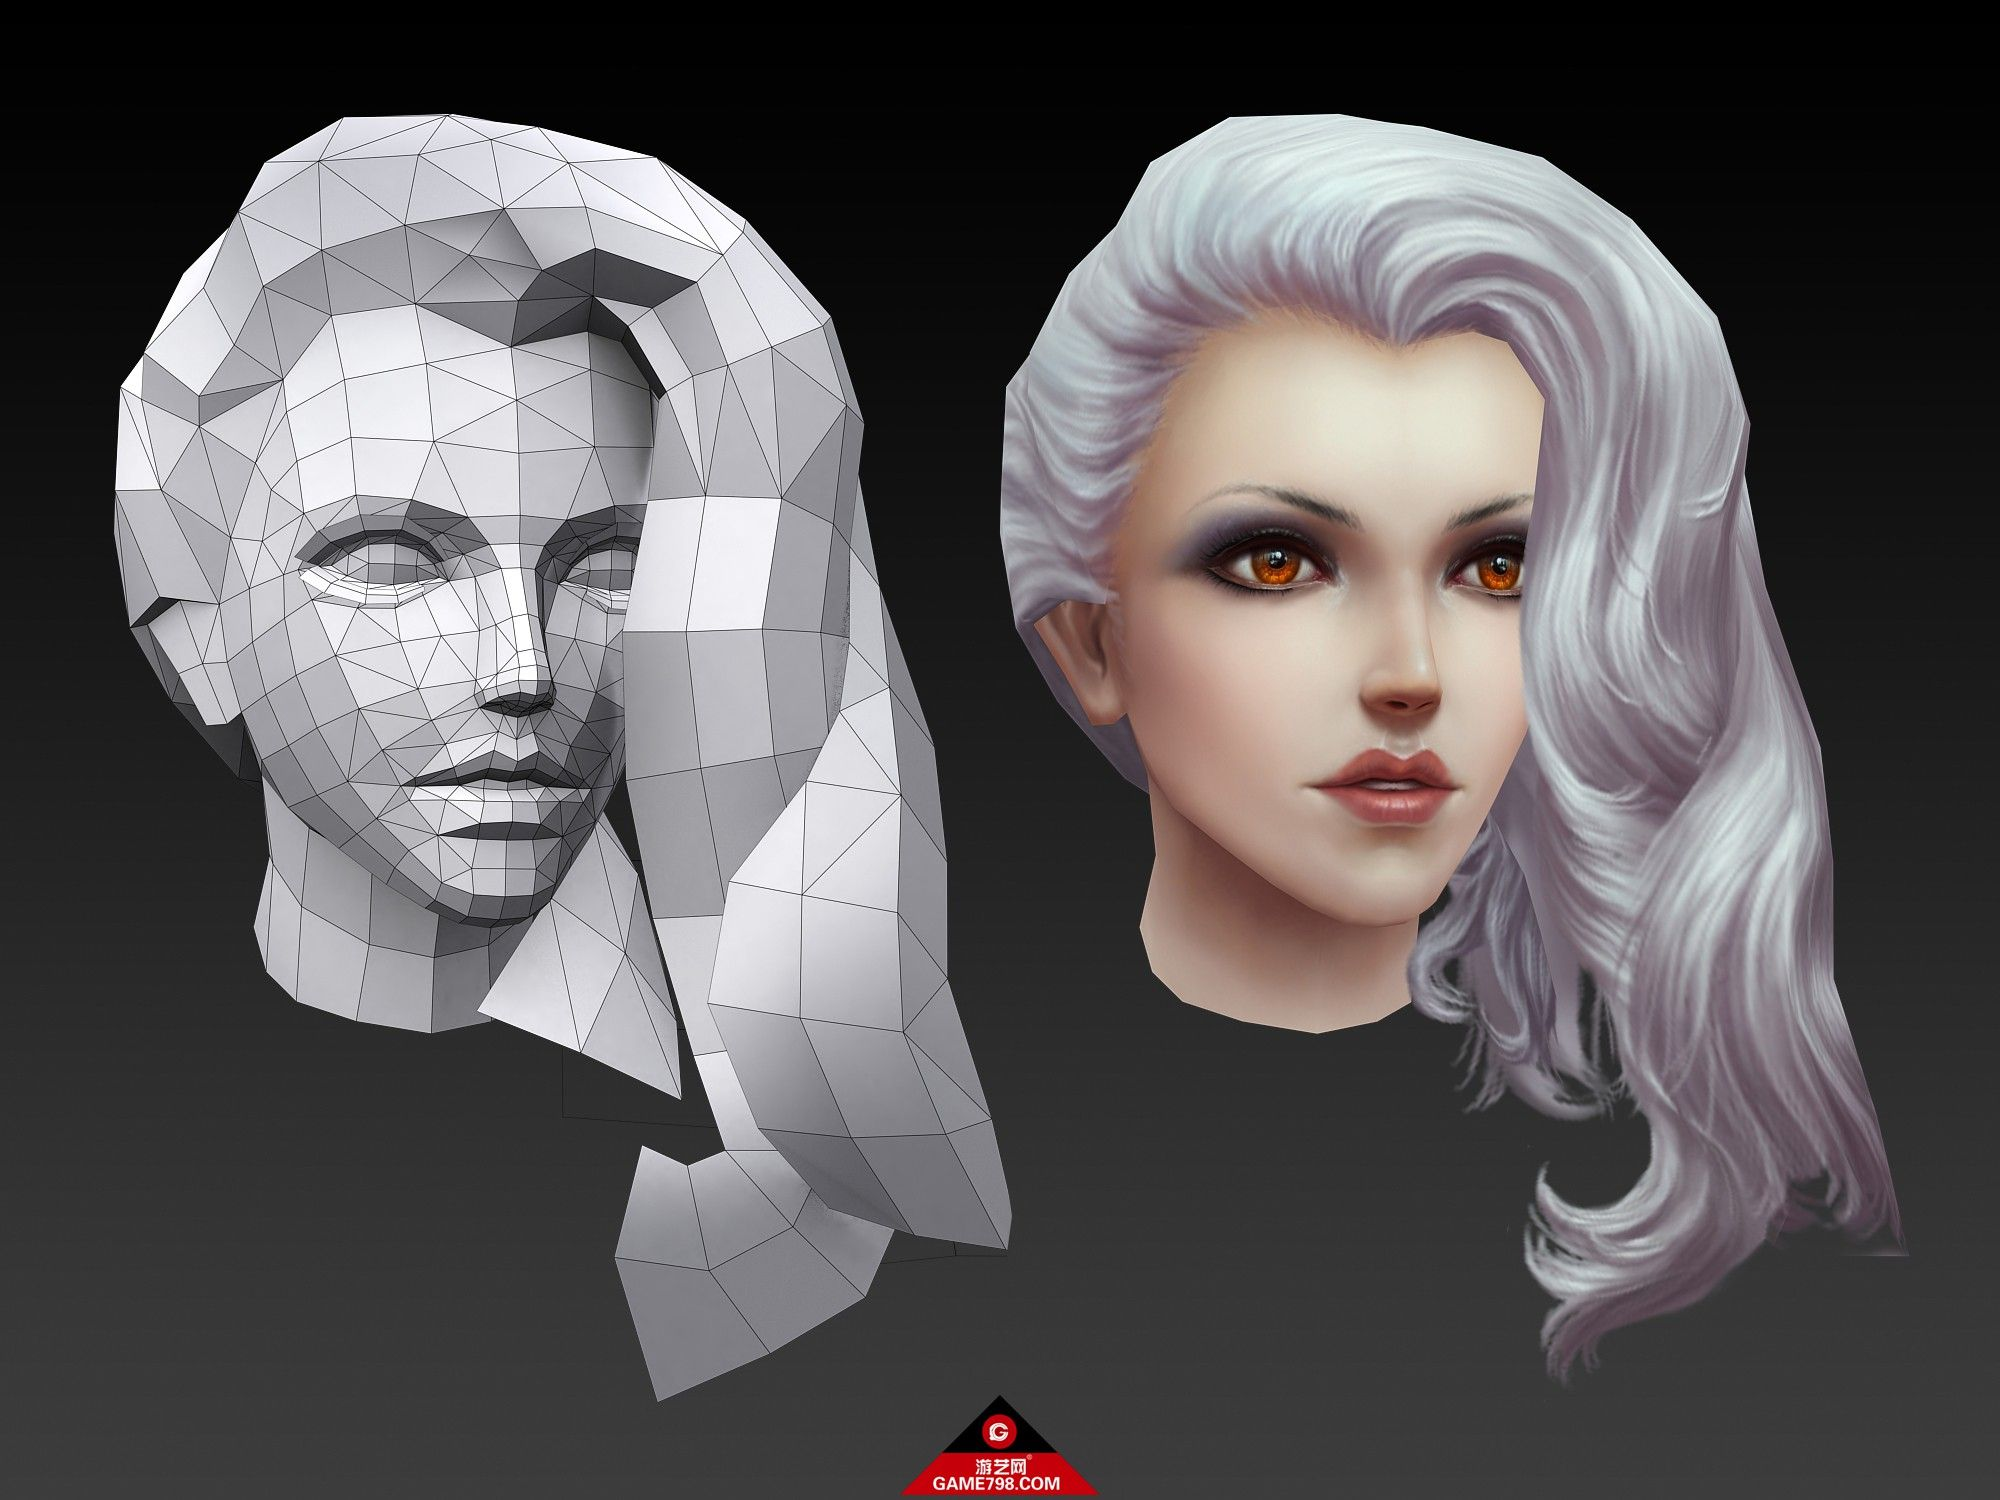 Pin by 玄天 盛主 on 角色作品 Pinterest Low poly, 3d and Characters